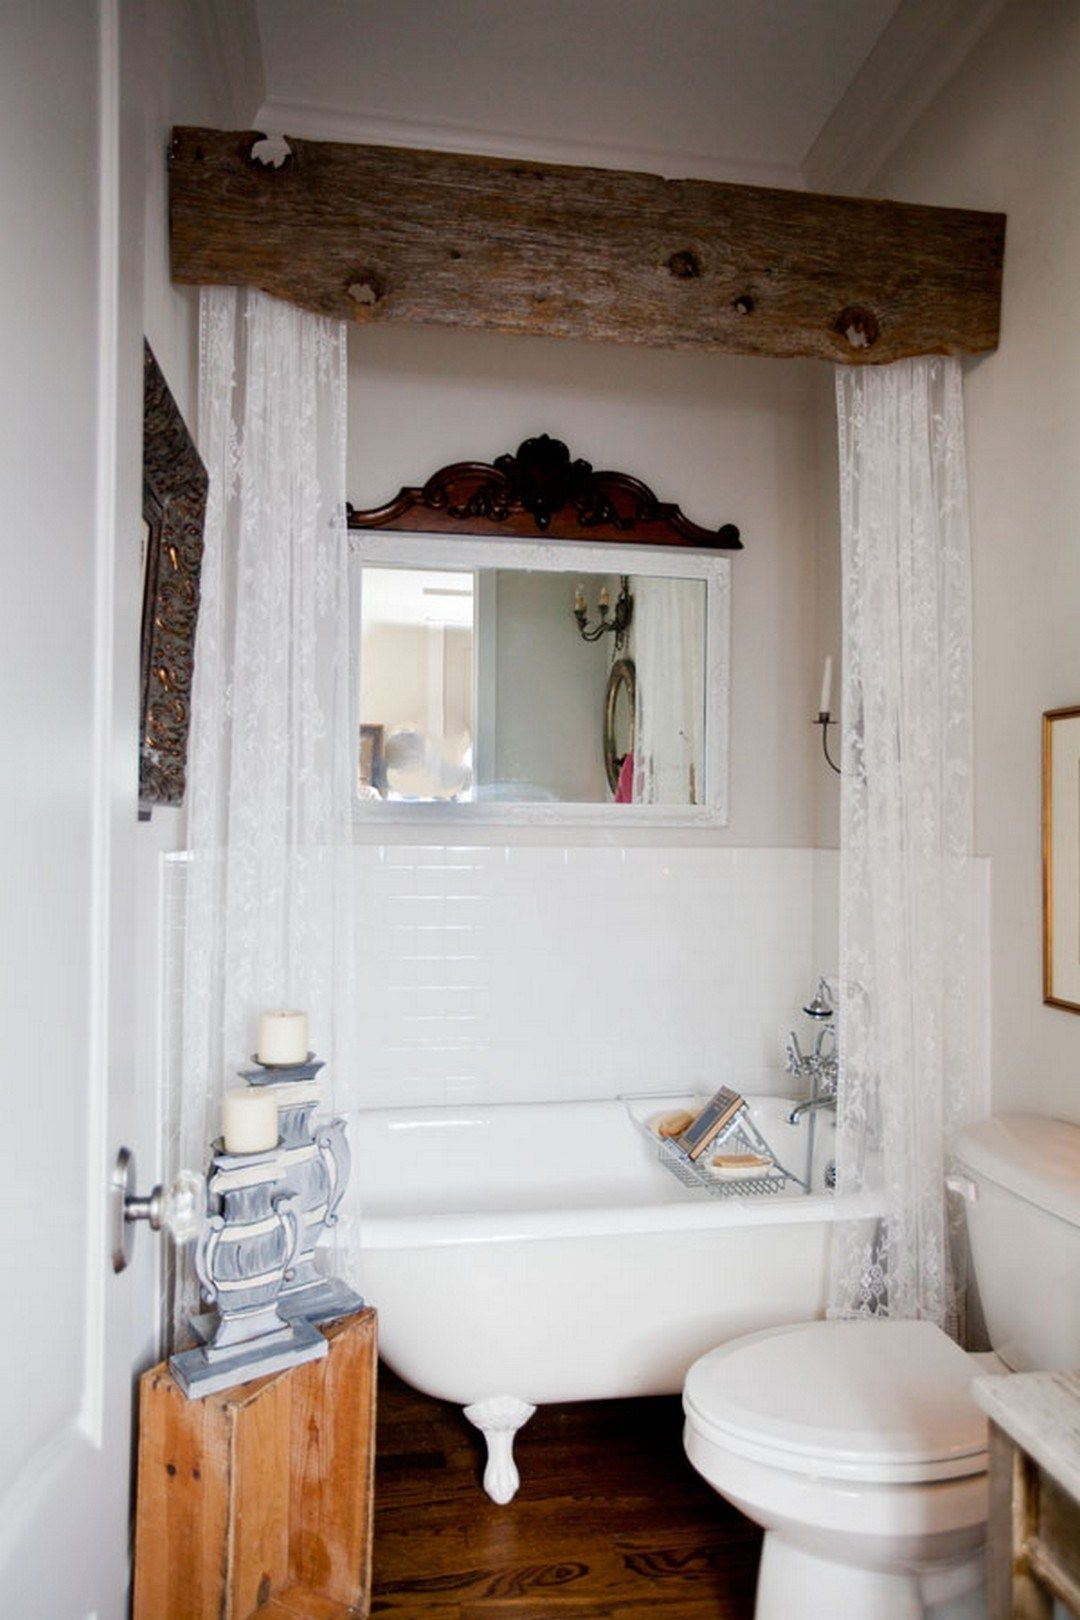 Small Bathroom Makeover On A Budget 99 small master bathroom makeover ideas on a budget (99 | bathroom